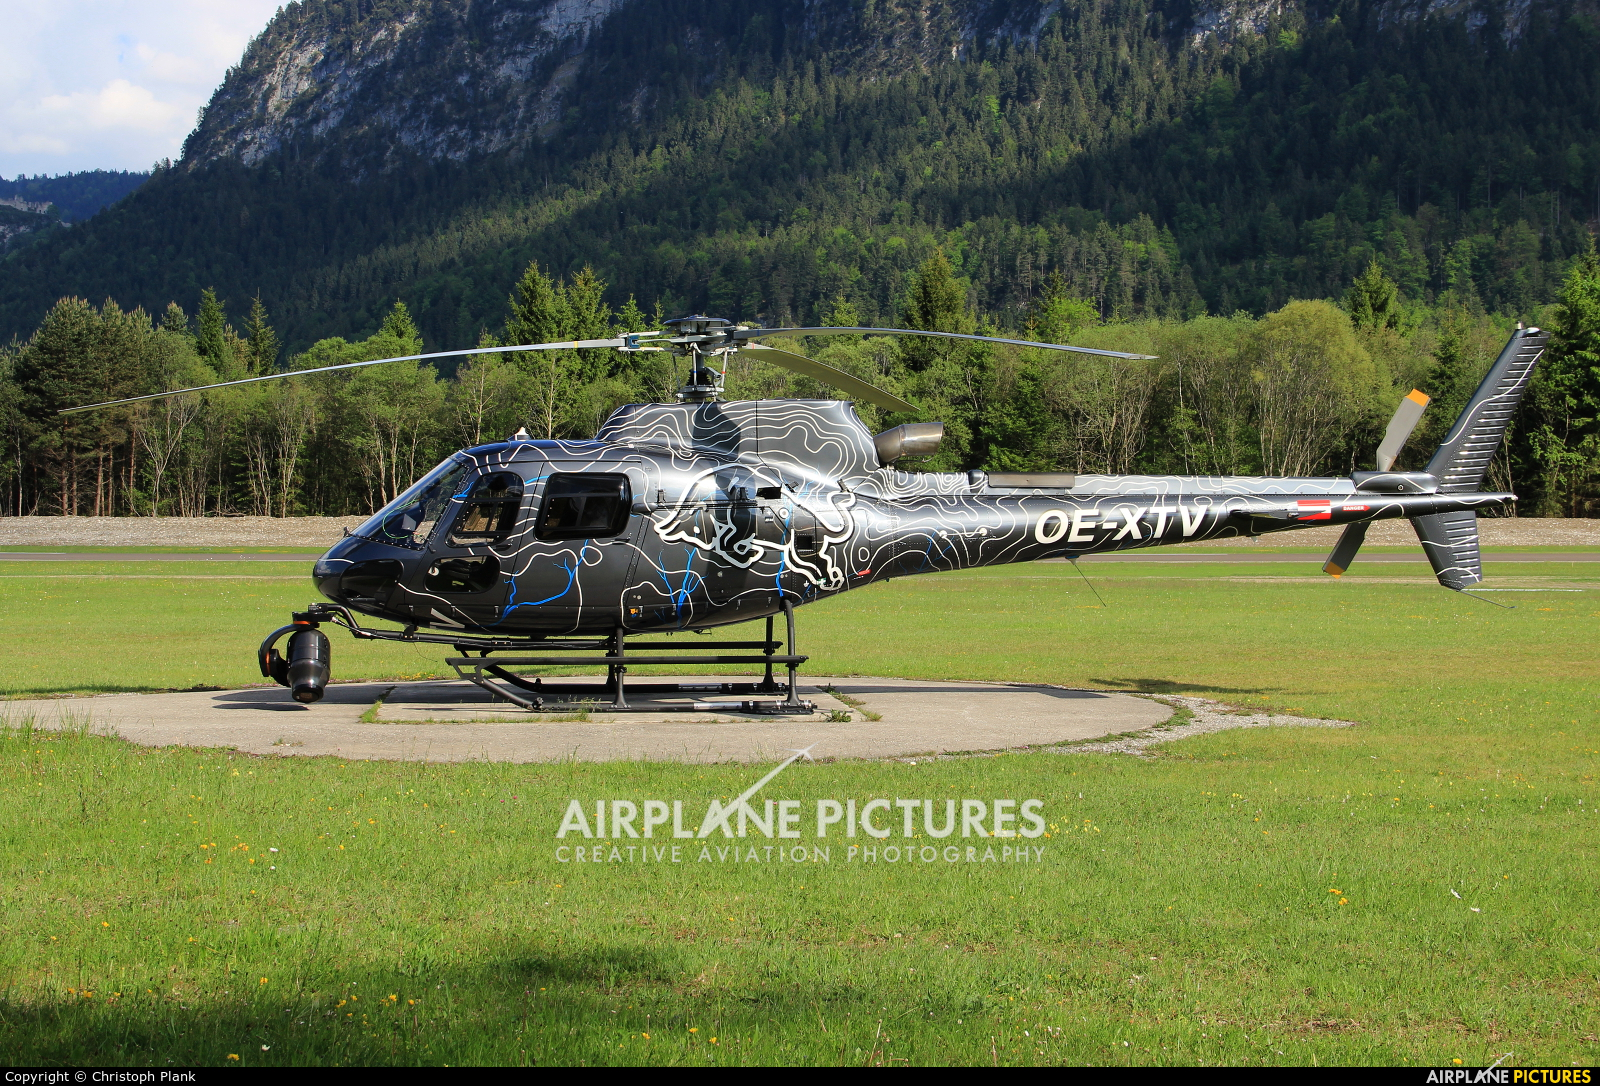 The Flying Bulls OE-XTV aircraft at Reutte